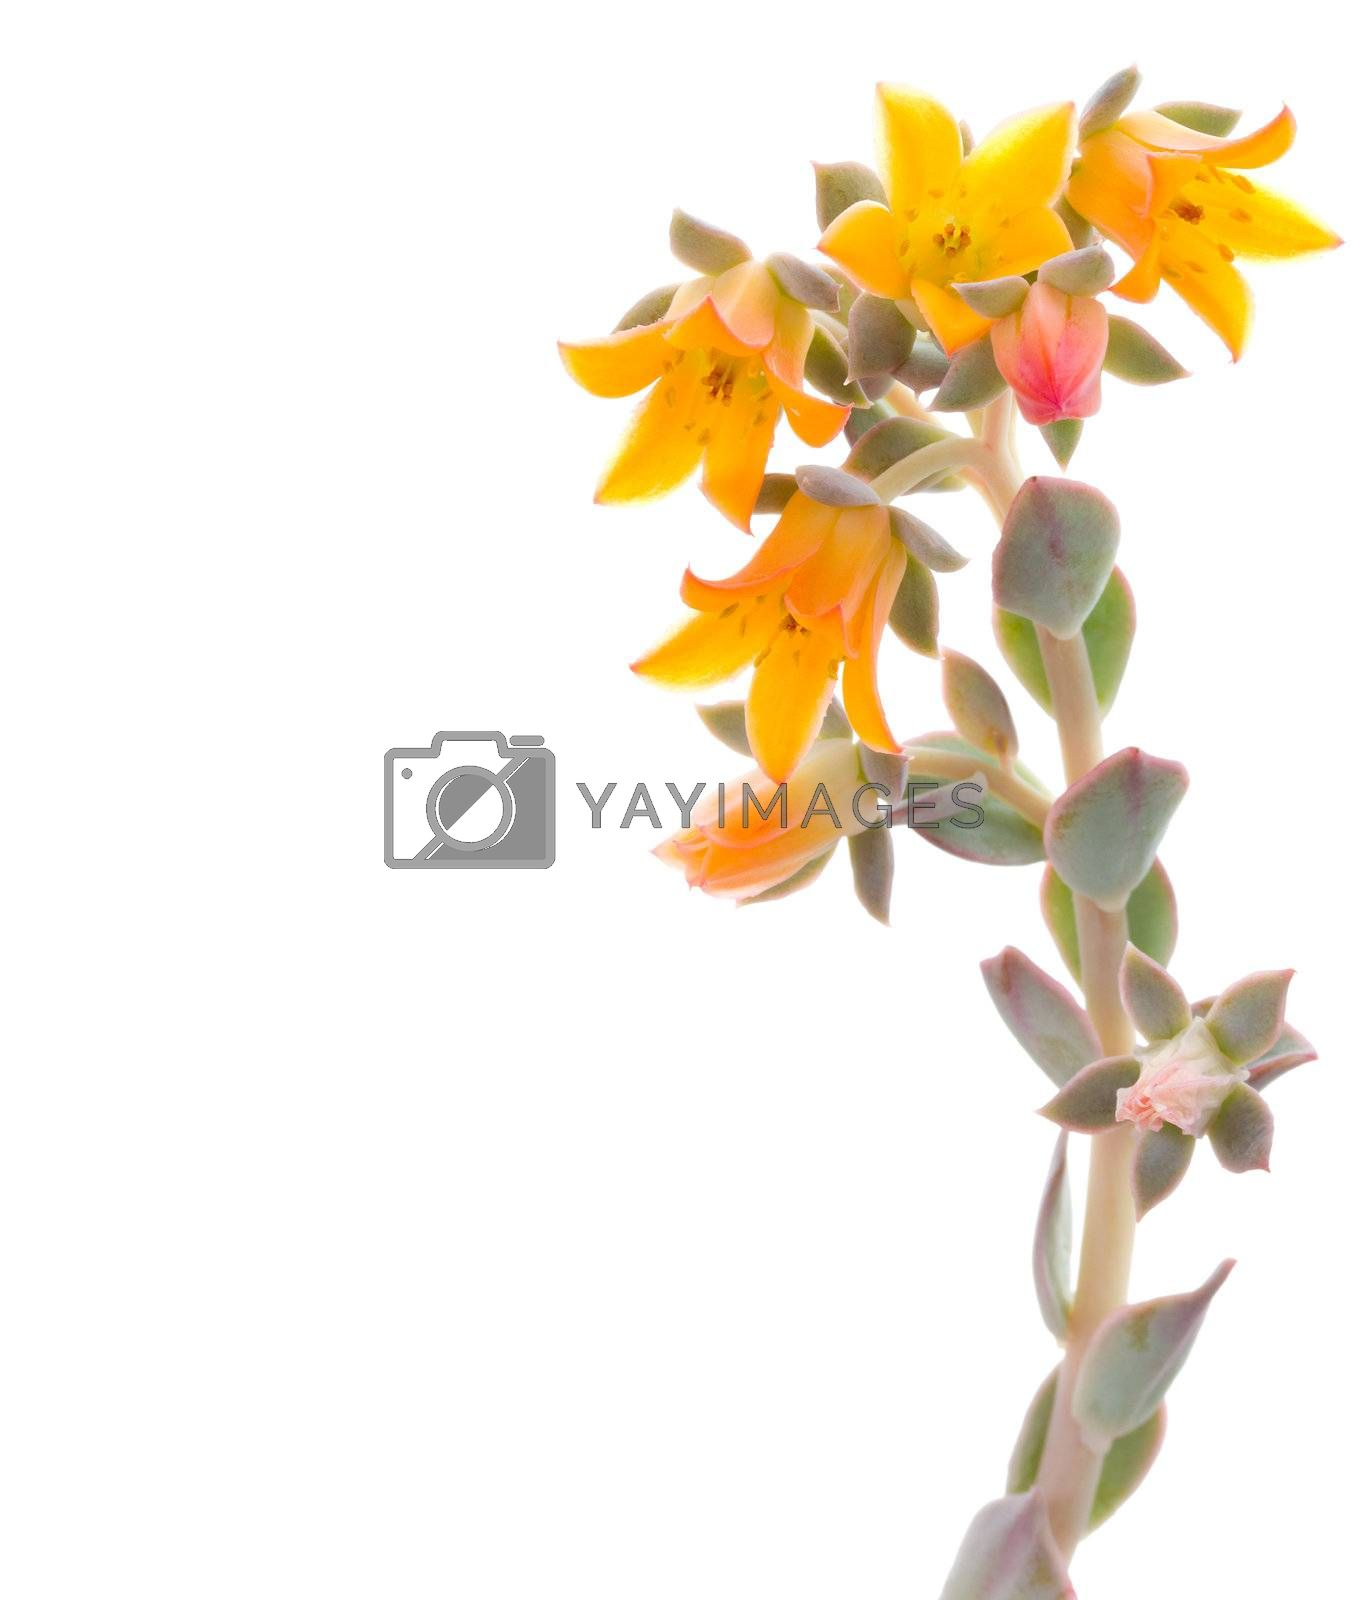 close-up flowers of echeveria, isolated on white